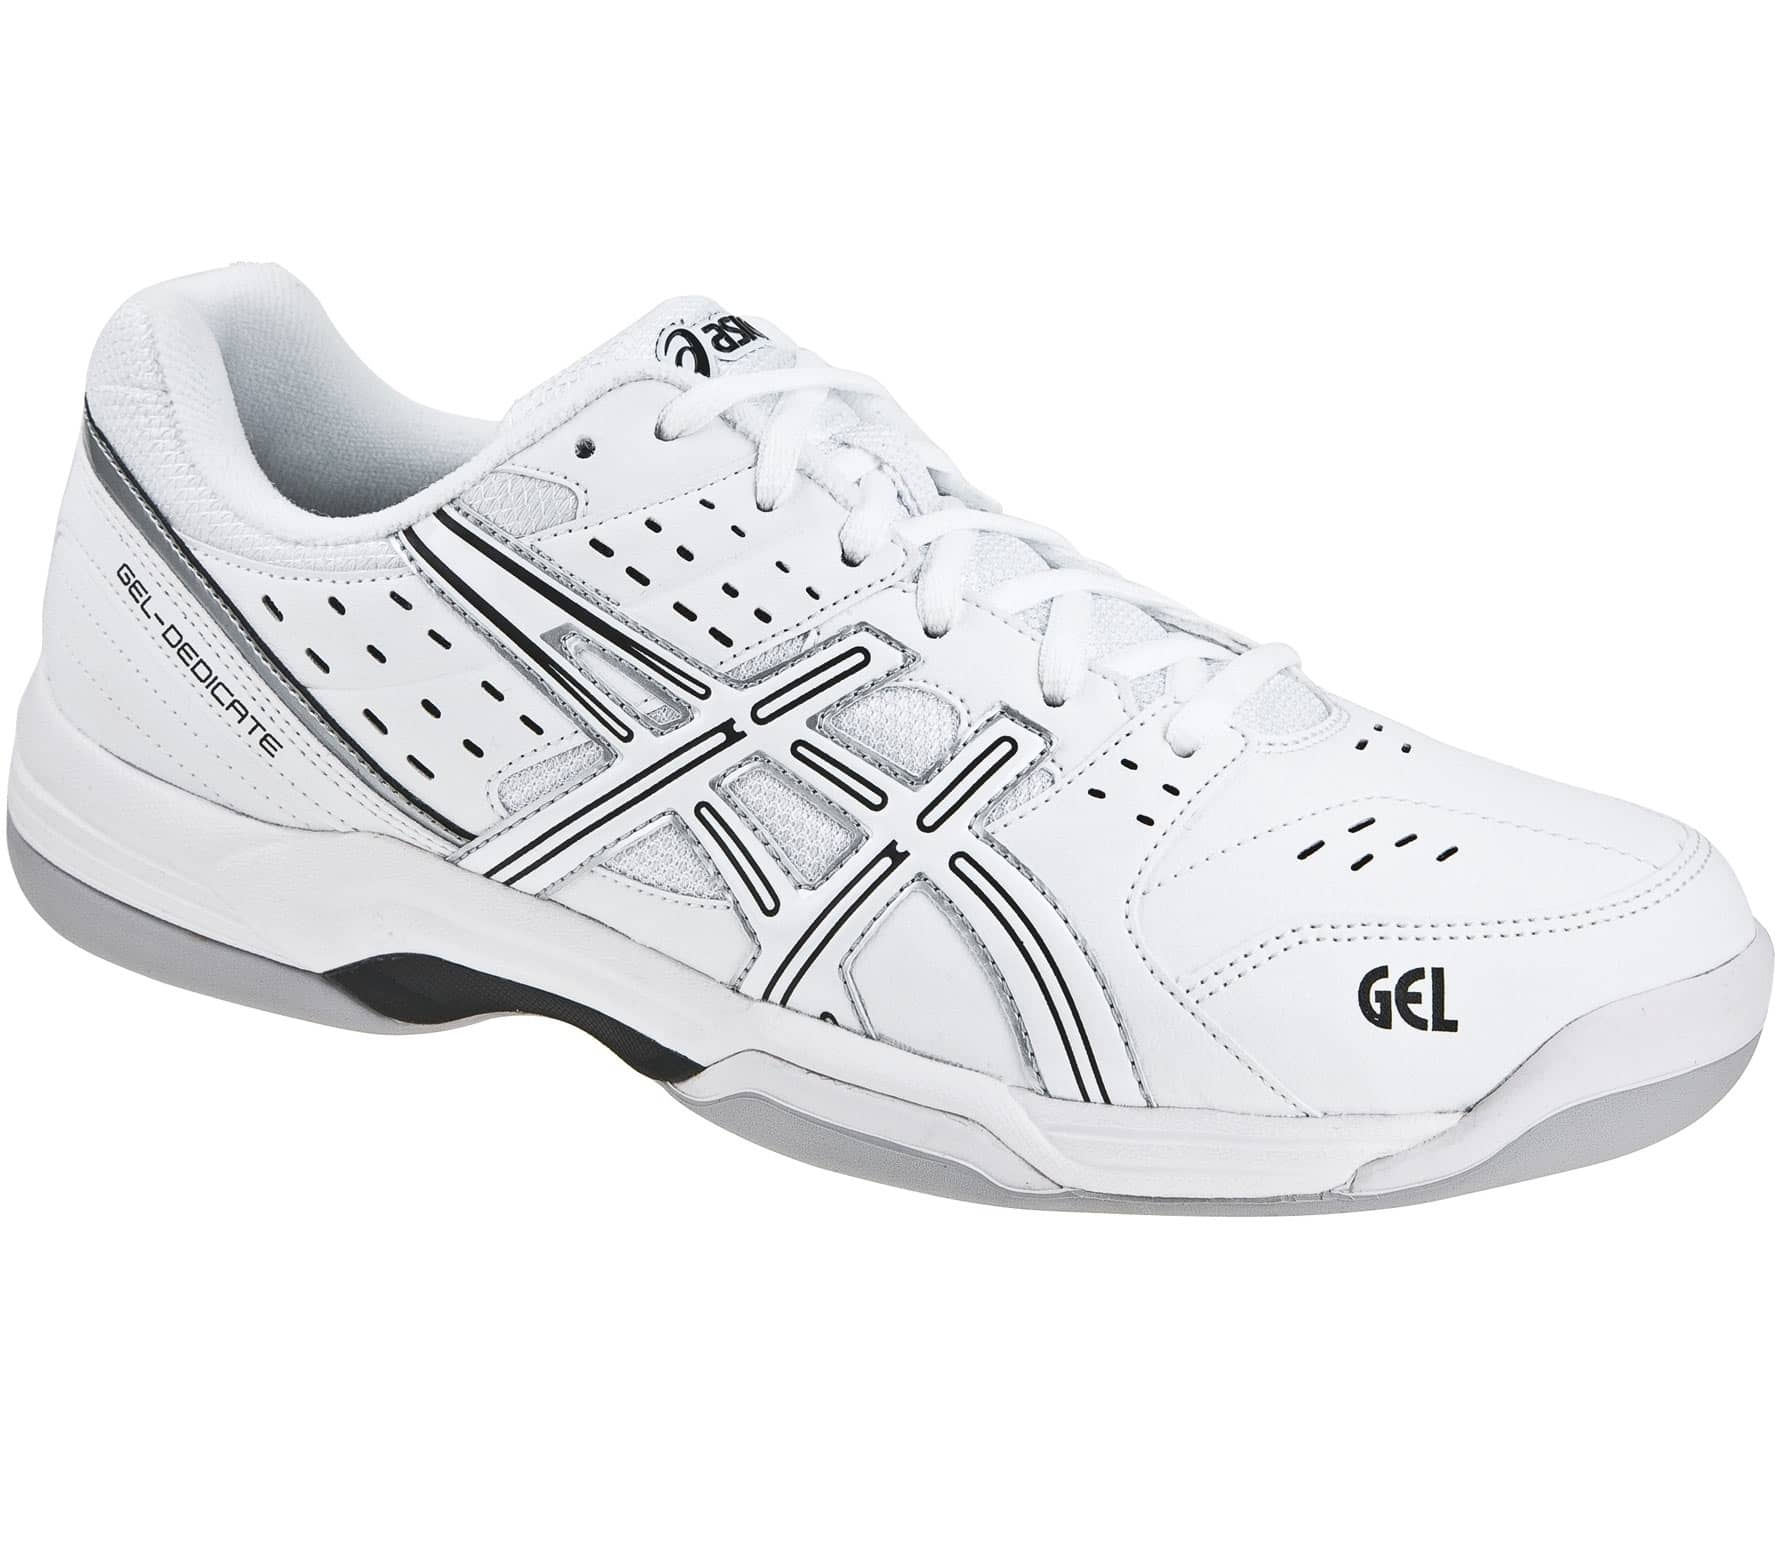 asics tennisschuhe herren gel dedicate 3 indoor hw13 im online shop von keller sports kaufen. Black Bedroom Furniture Sets. Home Design Ideas